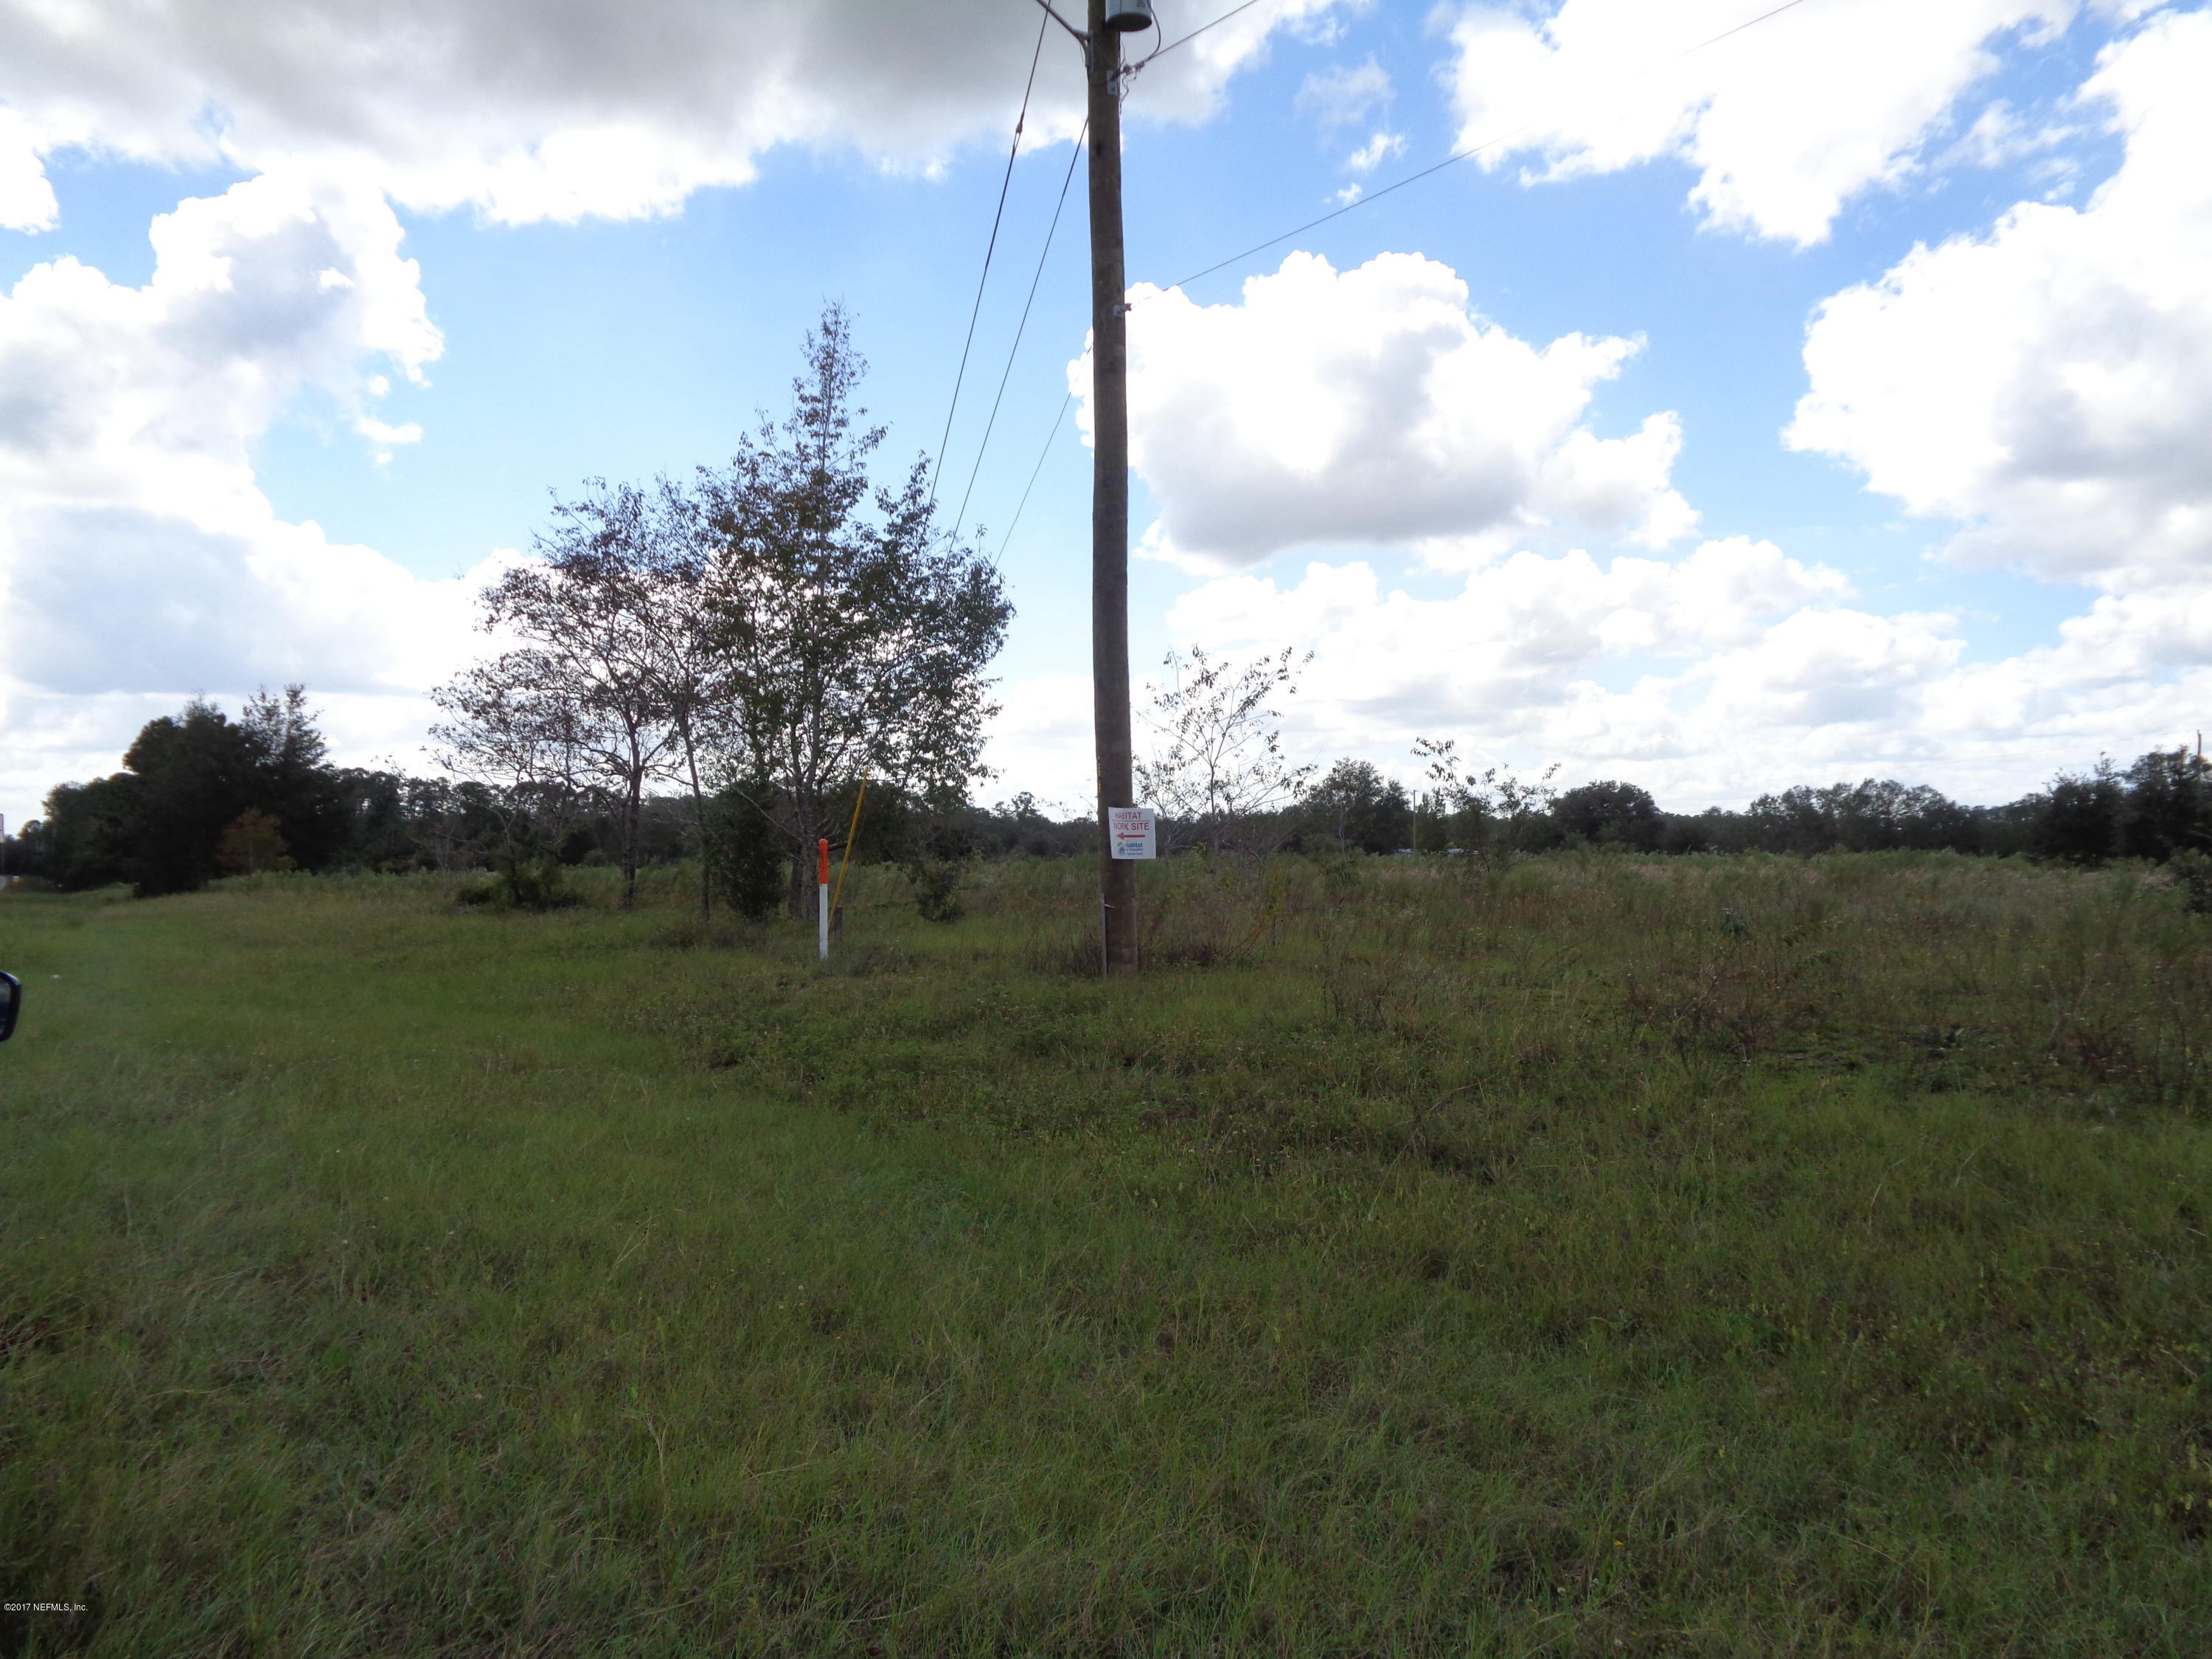 0 COUNTY RD 315, INTERLACHEN, FLORIDA 32148, ,Vacant land,For sale,COUNTY RD 315,904520